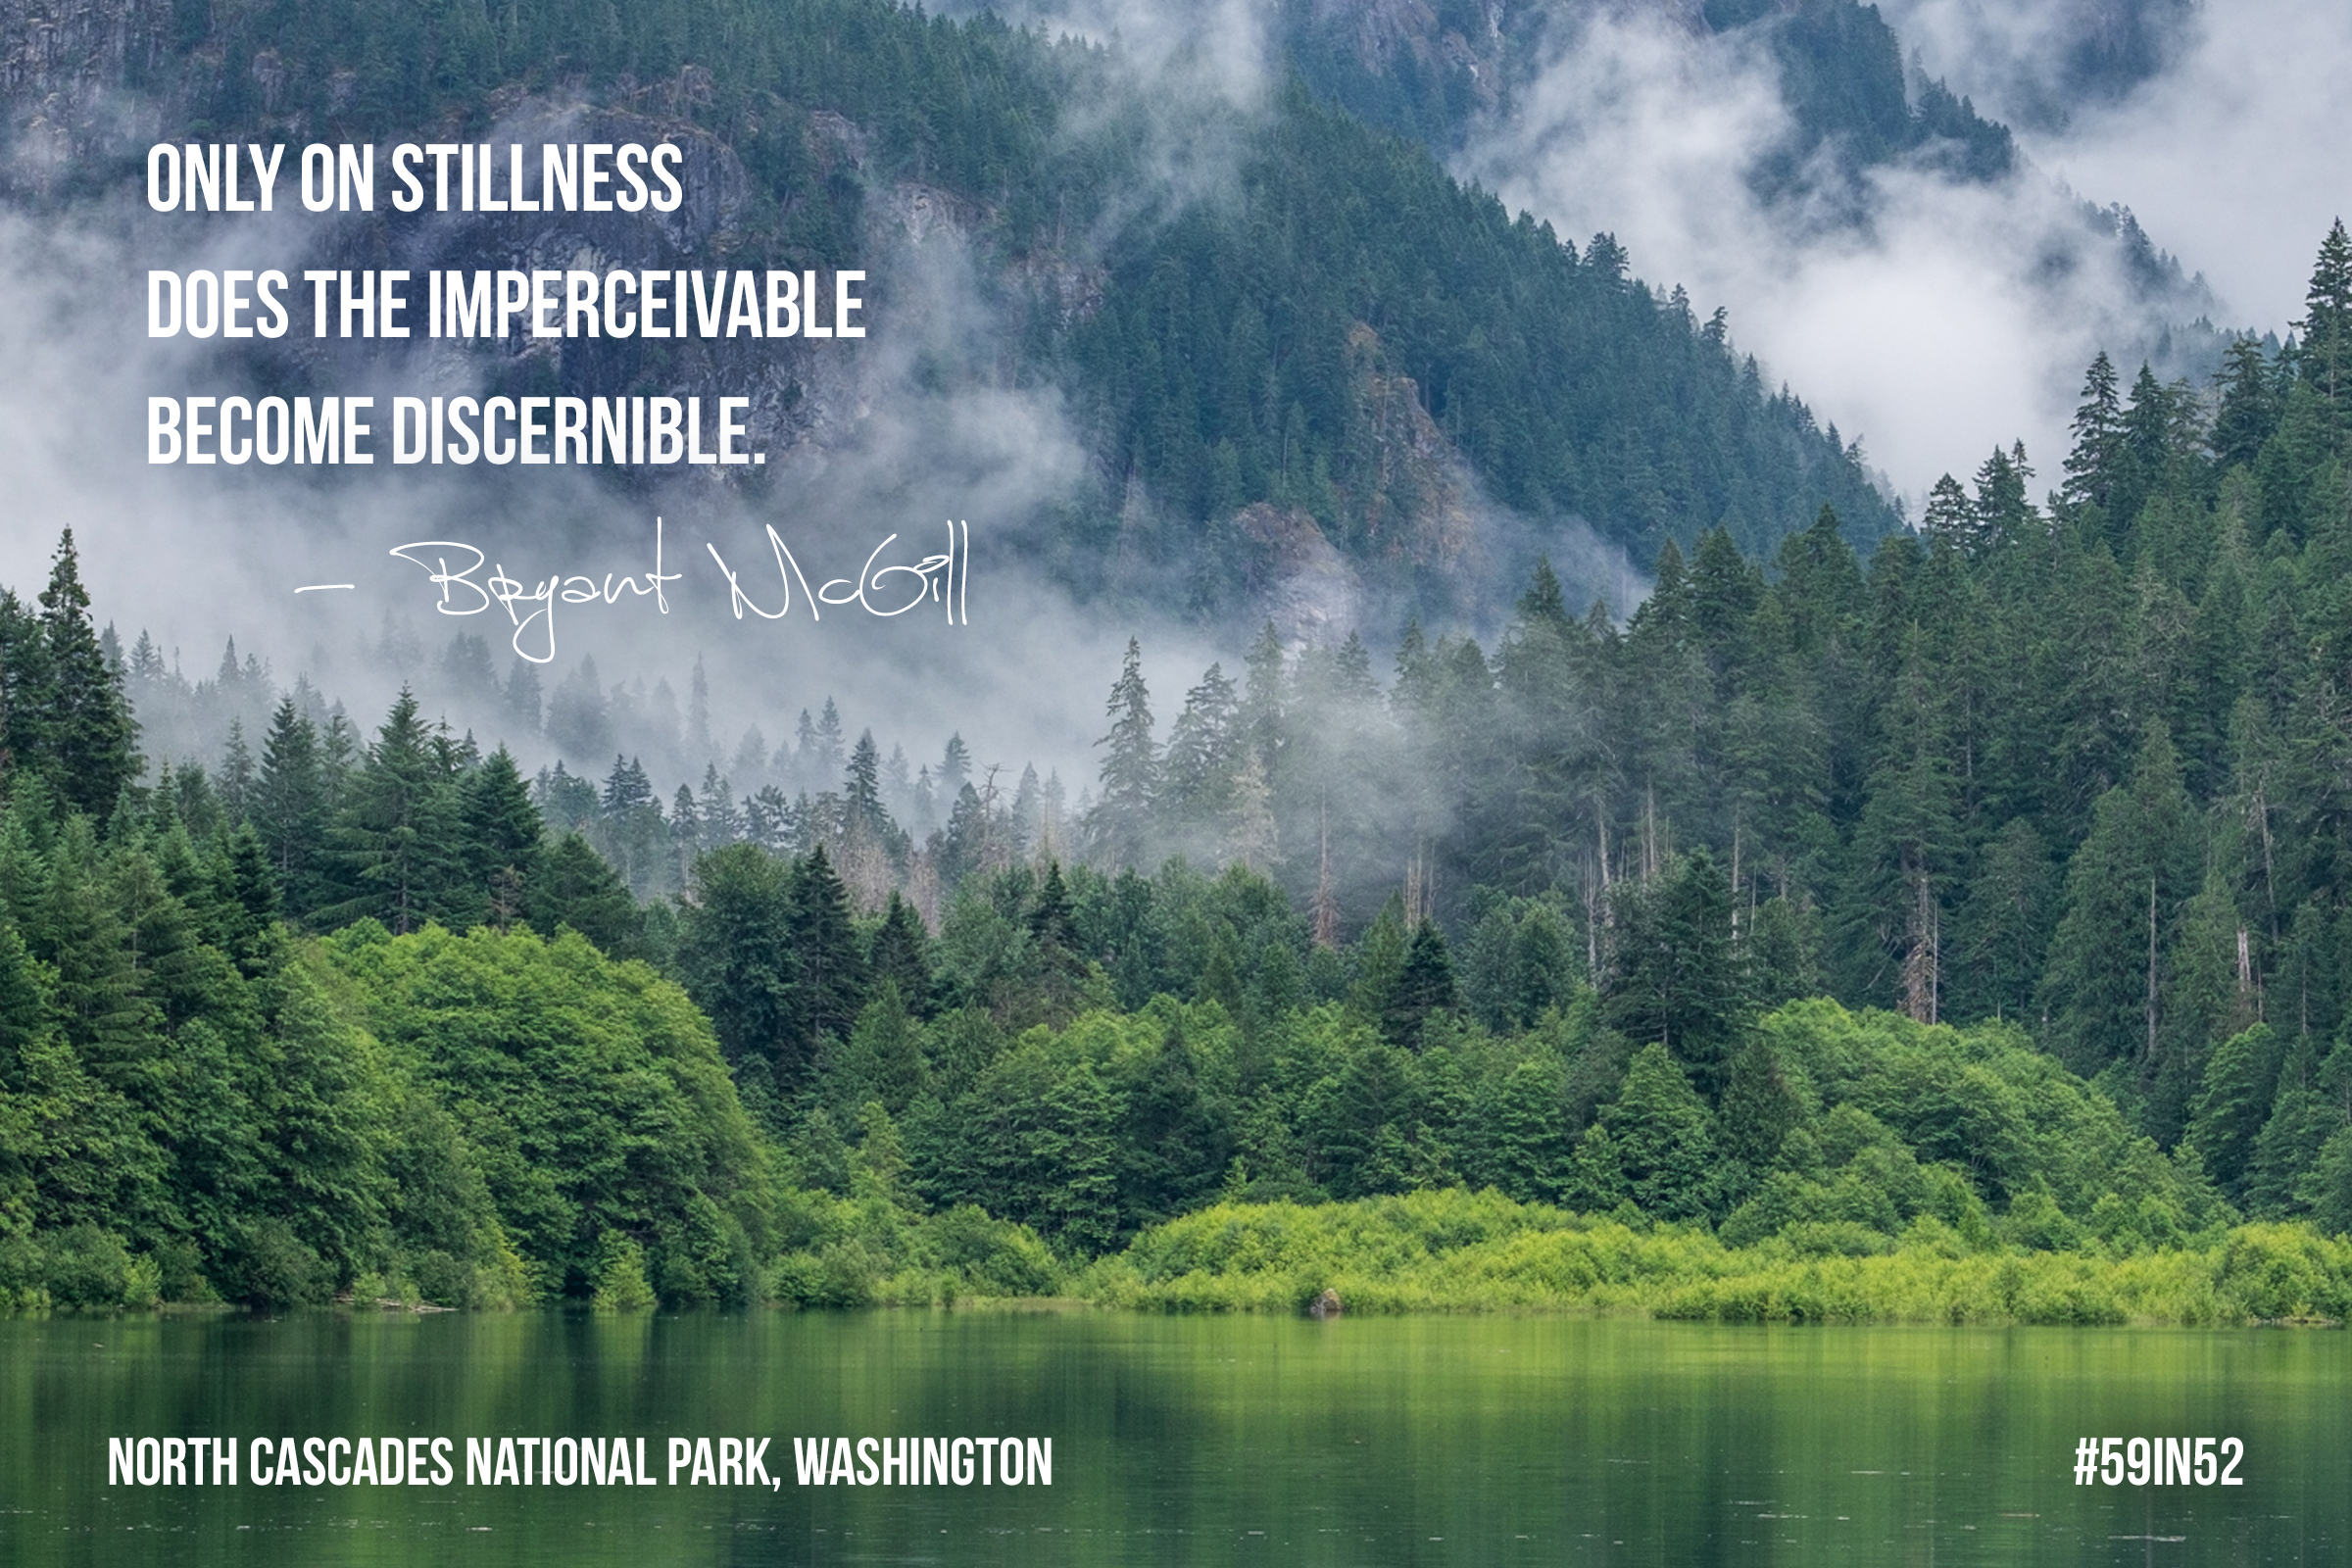 """Only on stillness does the imperceivable become discernible."" - Bryant McGill"